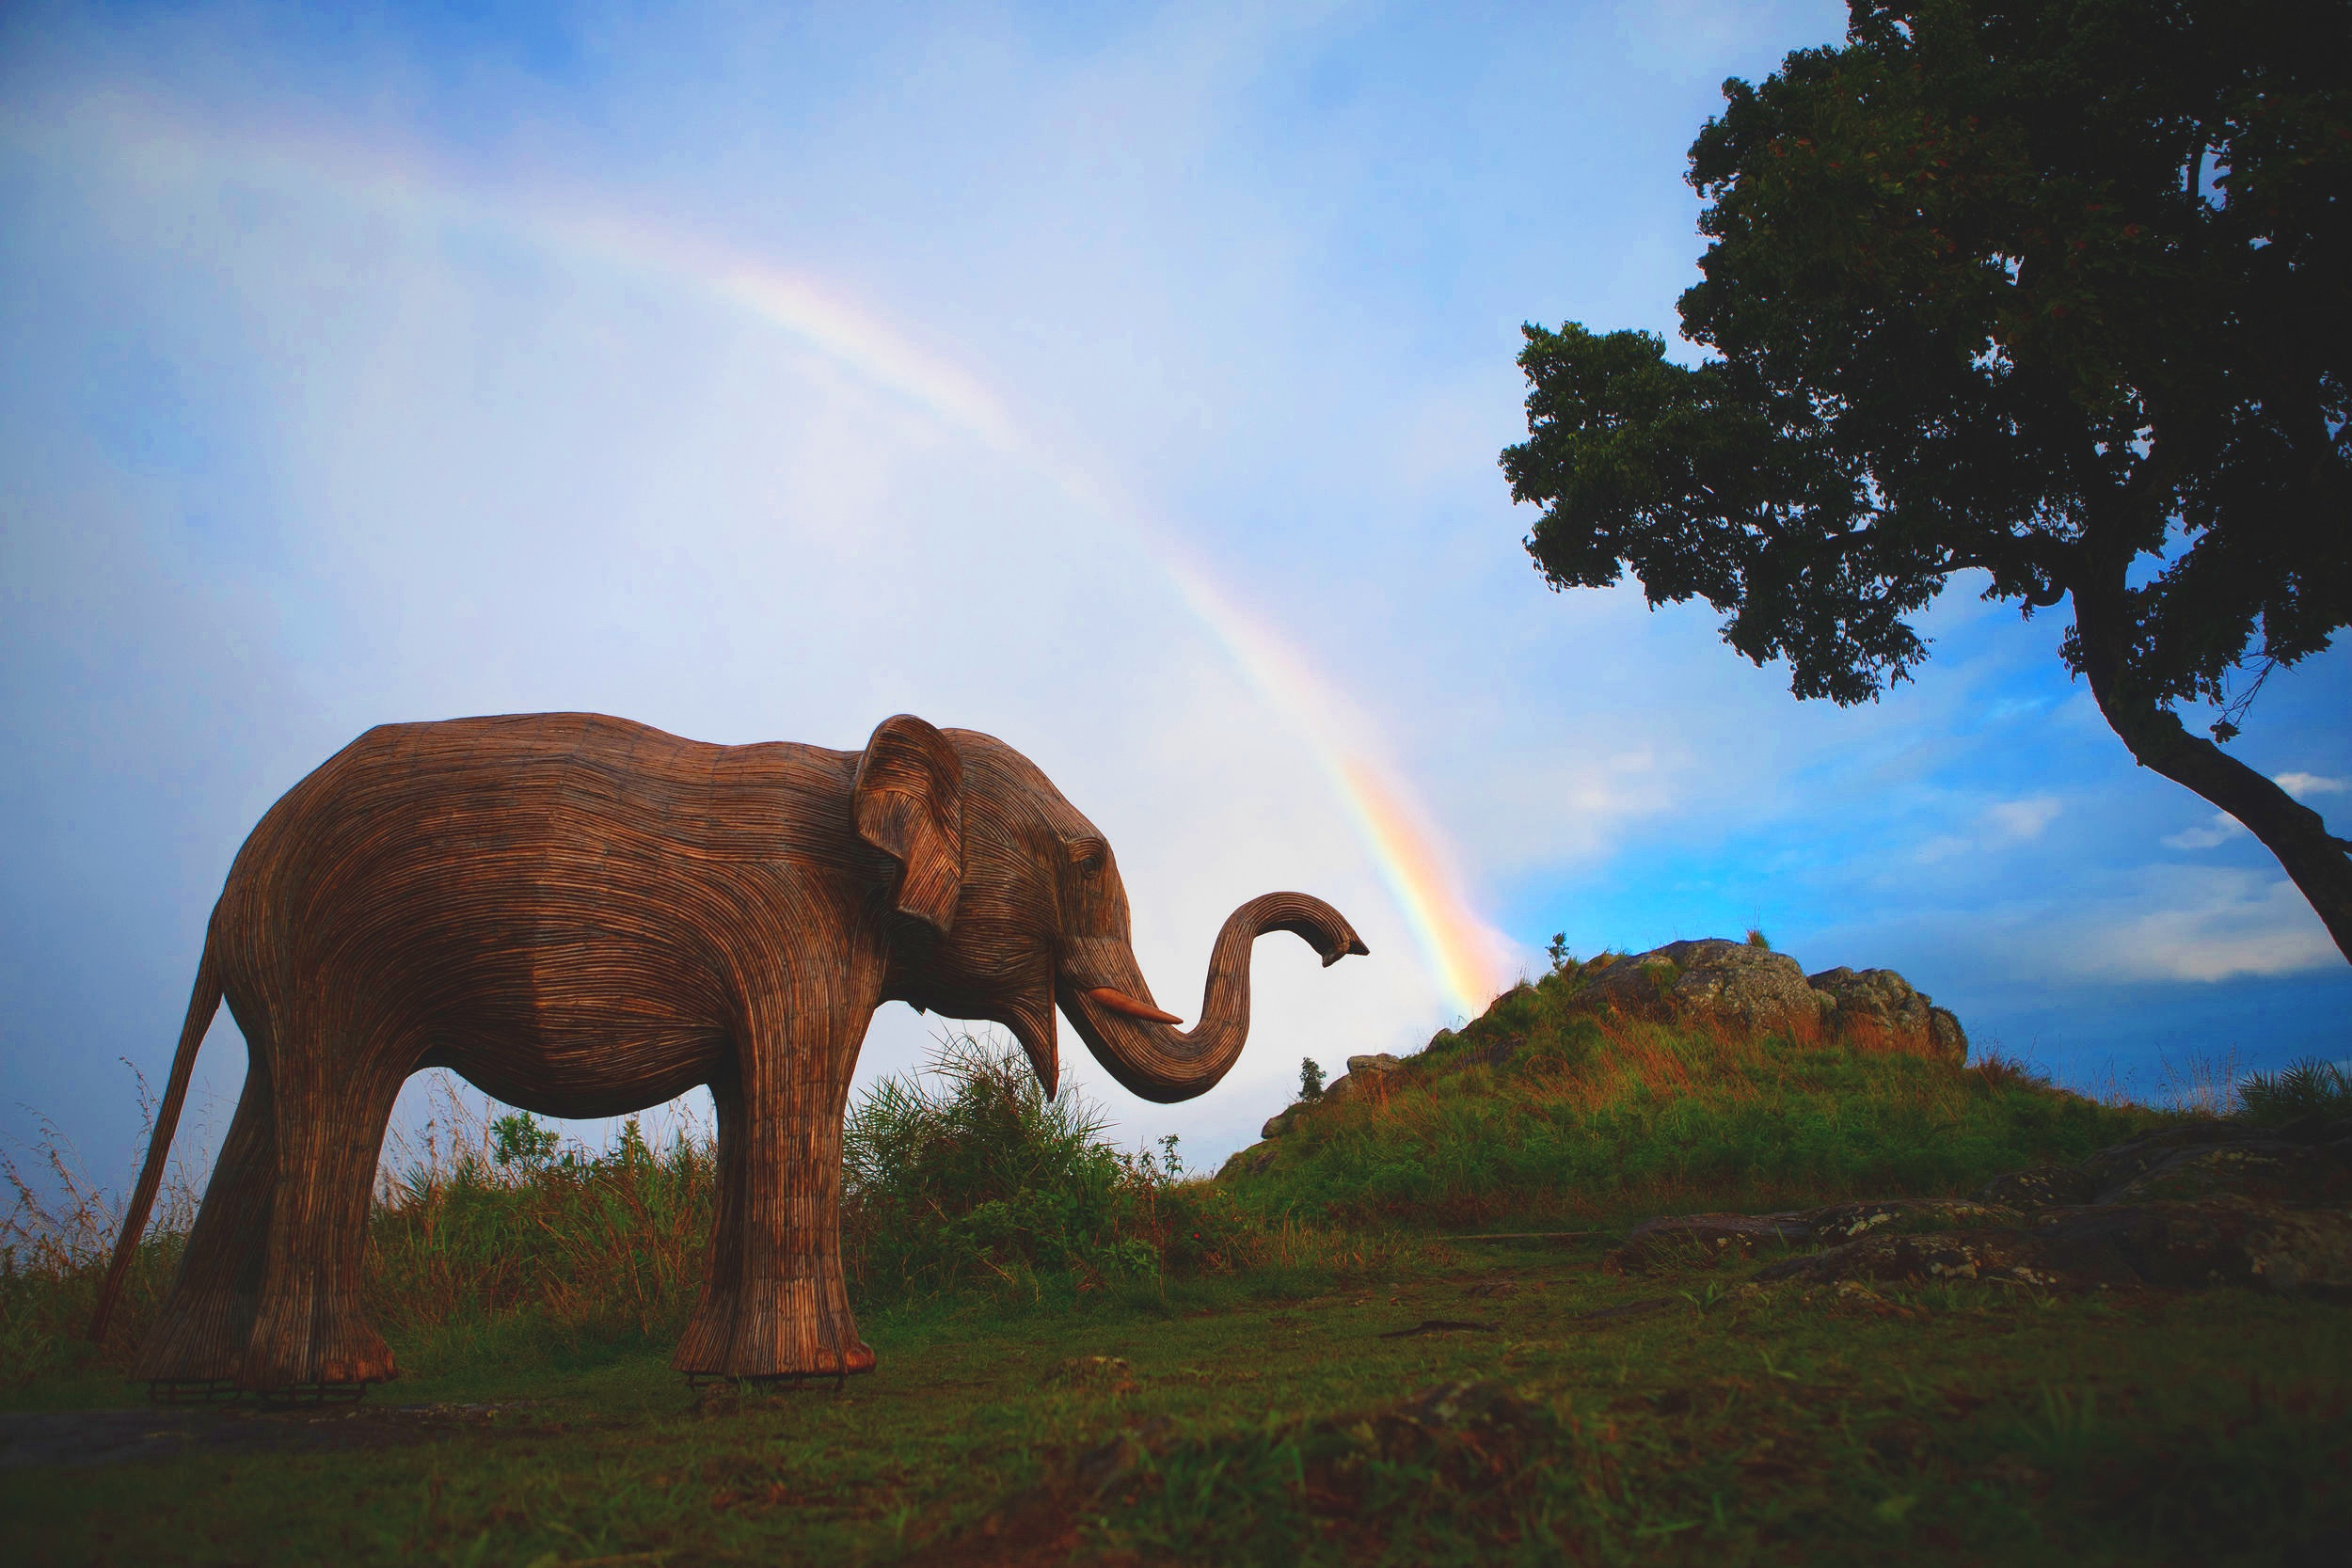 JOIN THE CALL OF THE WILD - Help us achieve our target to create a world where wild animals and humans live side by side.Fundraise with an Elephant Tea PartyMigrate with us in the USACommission an Elephant Sculpture